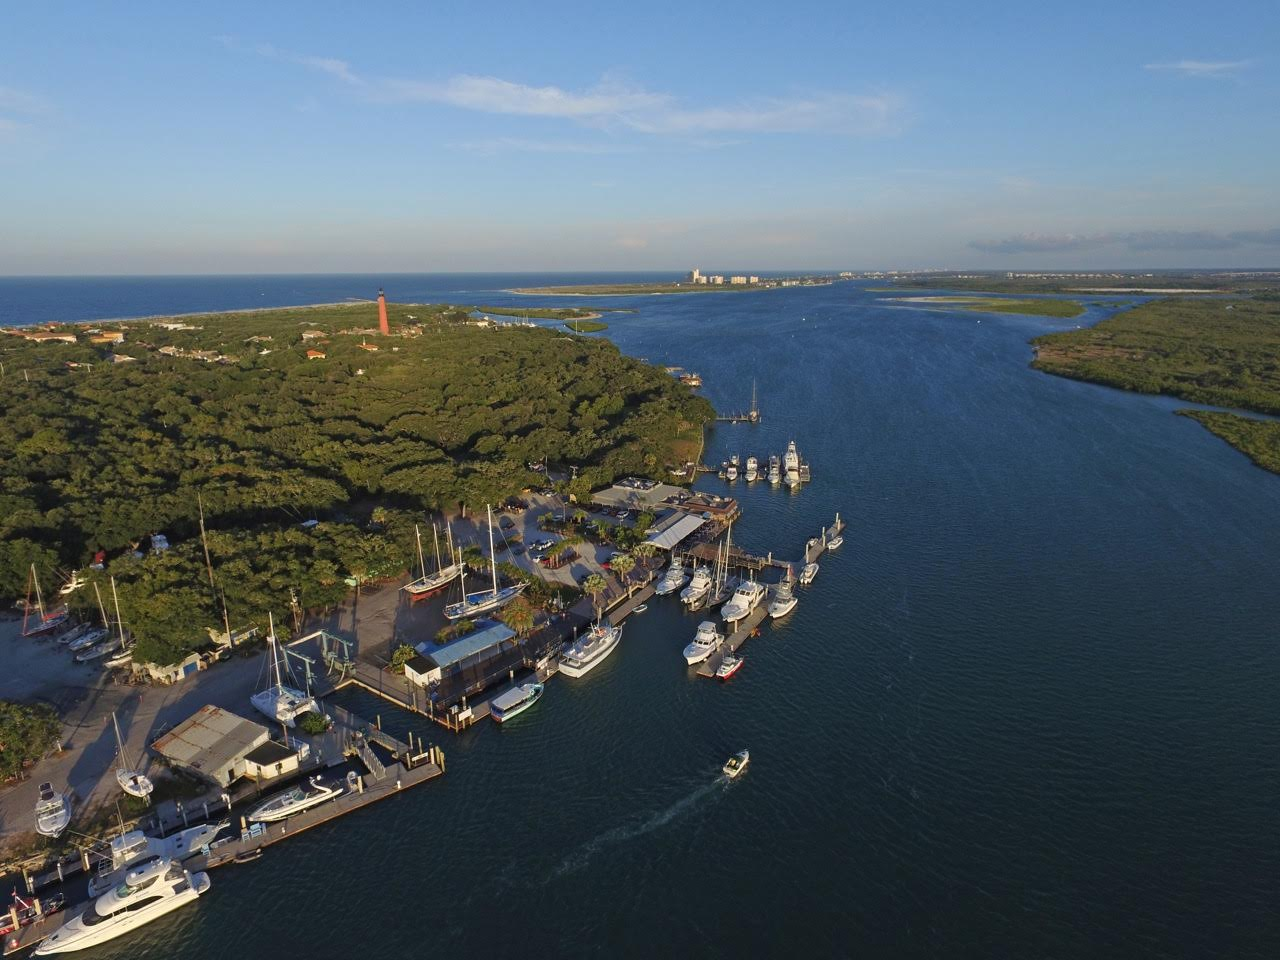 overhead shot of inlet and marina